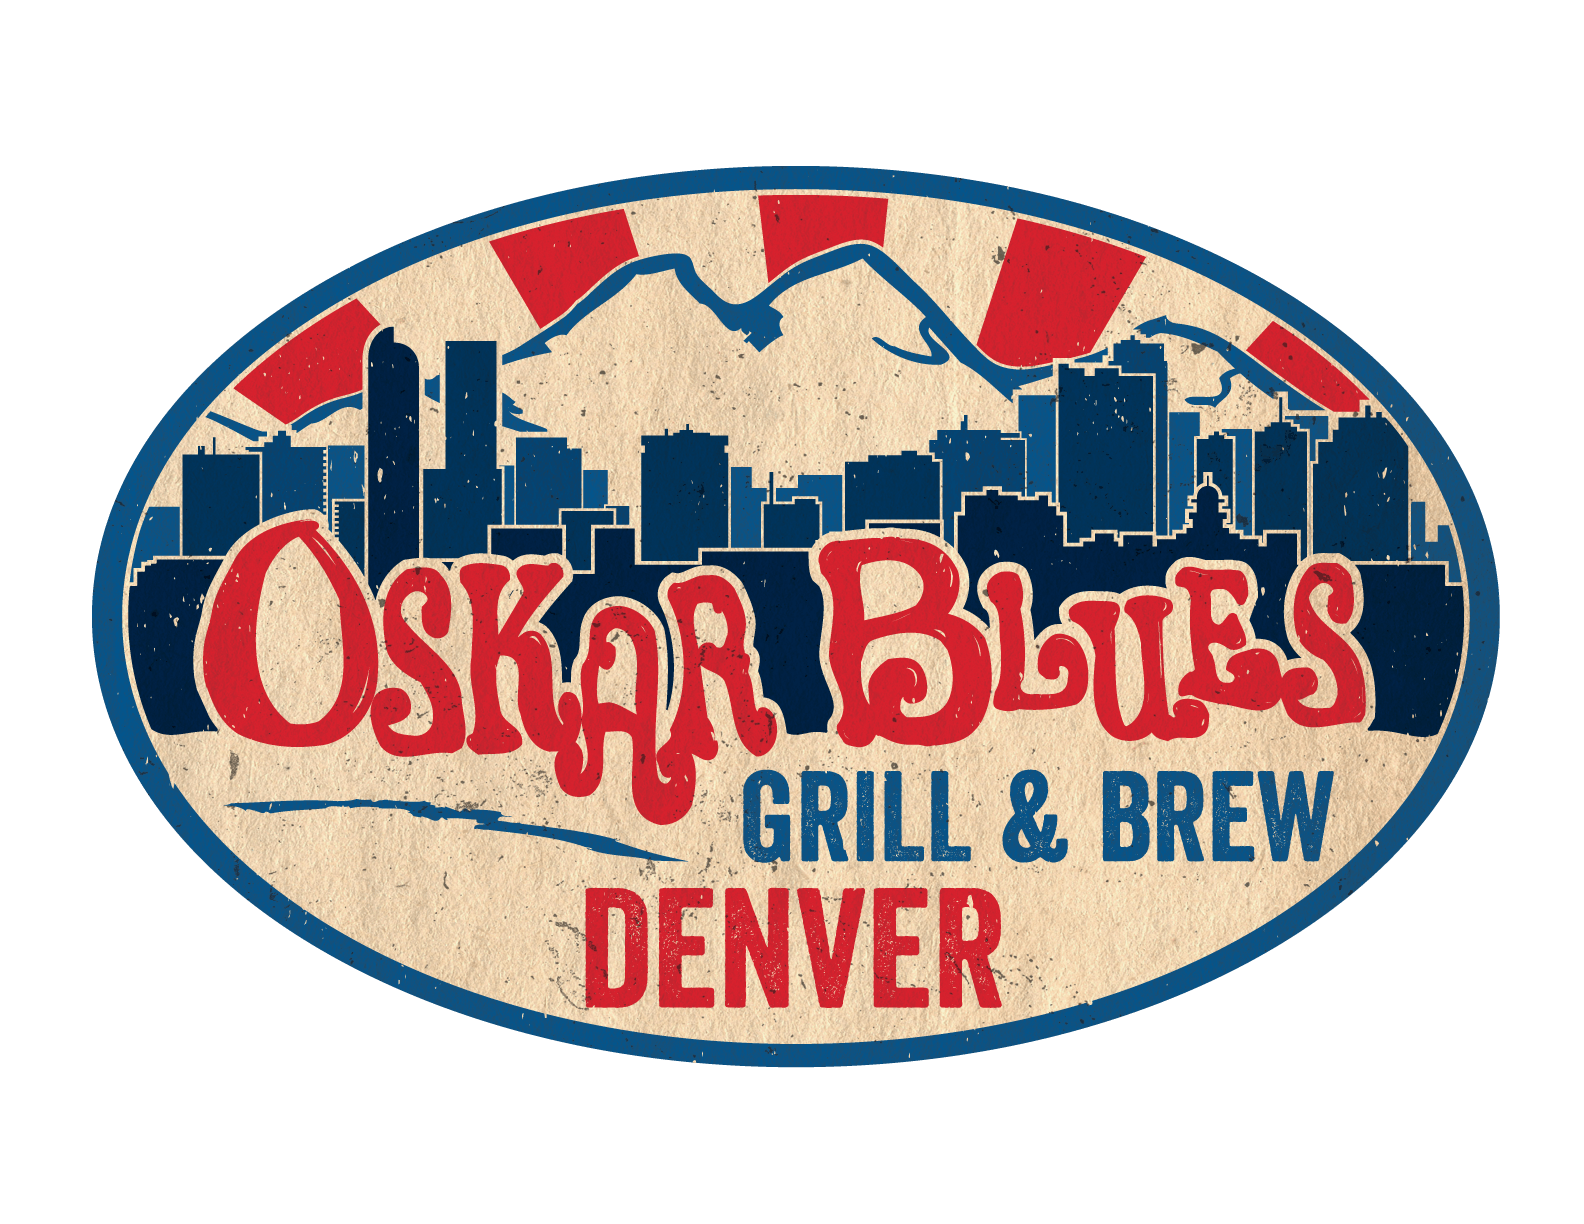 7e7873825 Blah • Blah • Blog - Oskar Blues Fooderies